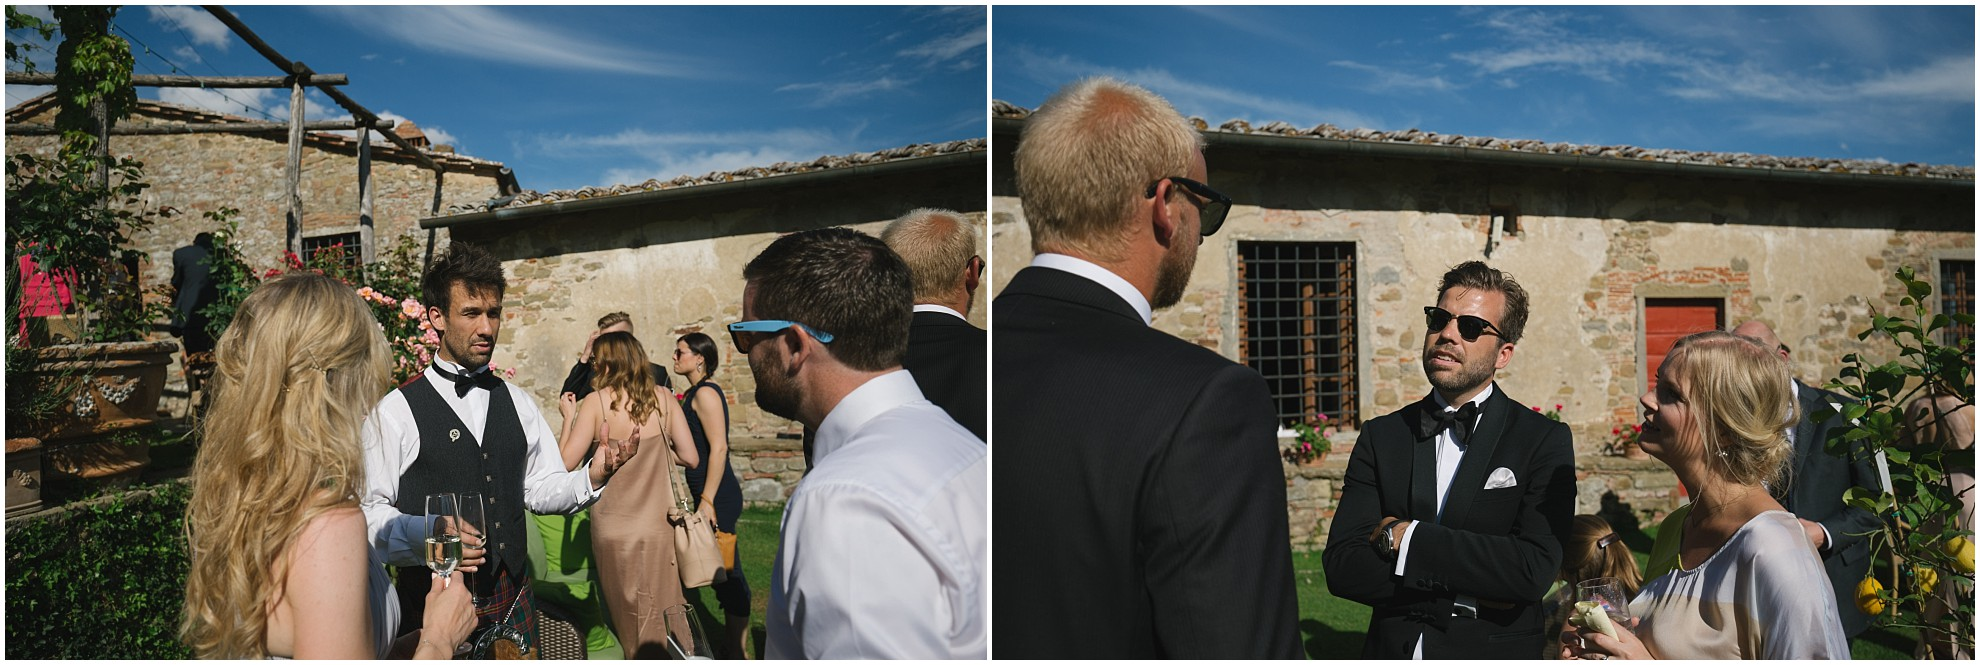 tuscany-wedding-photographer-065